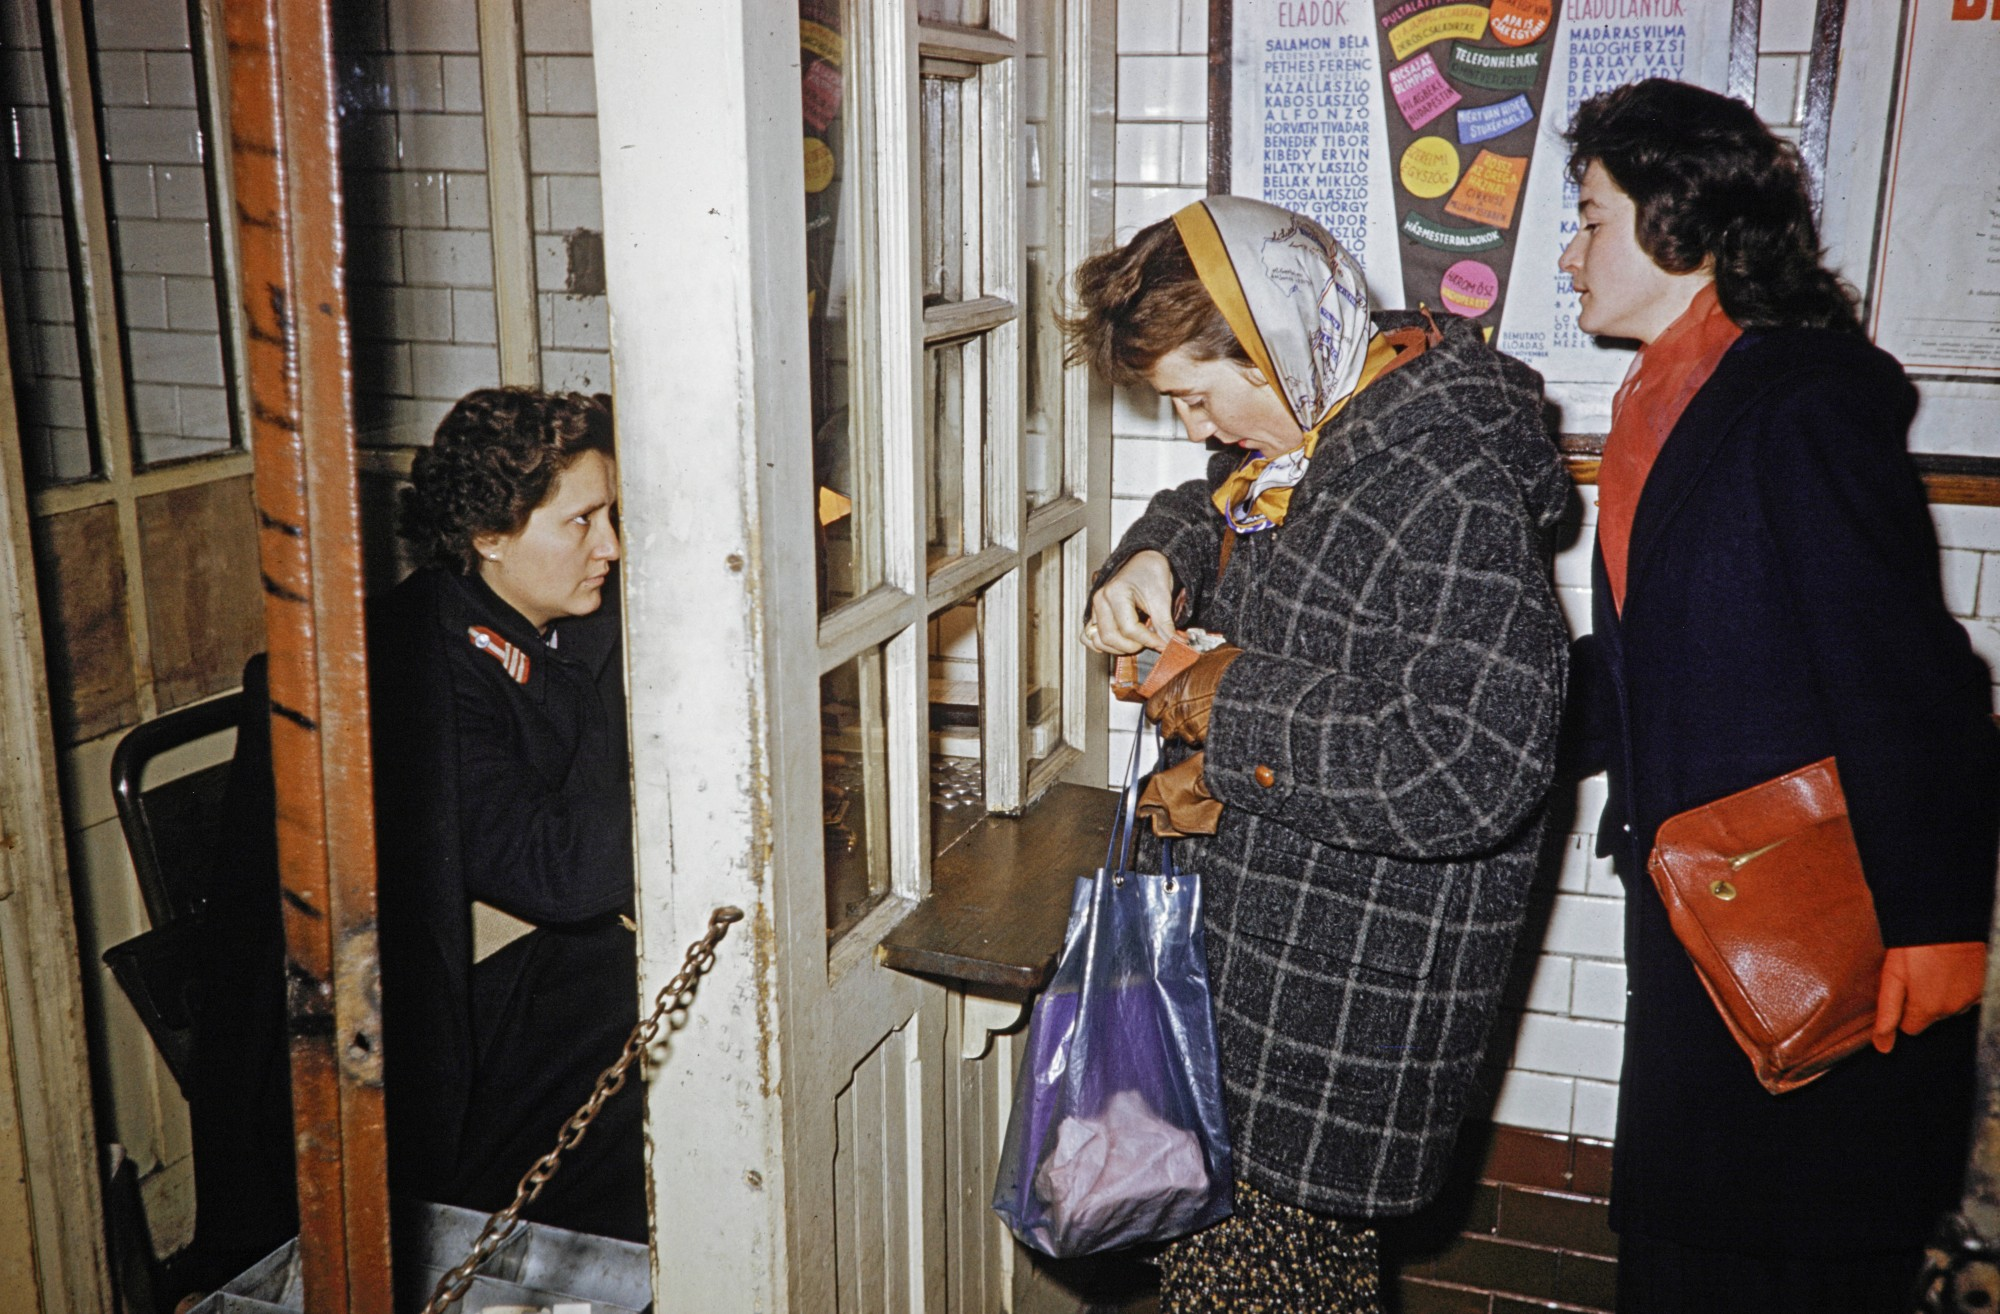 1960 Budapest, women purchasing subway tickets in Budapest